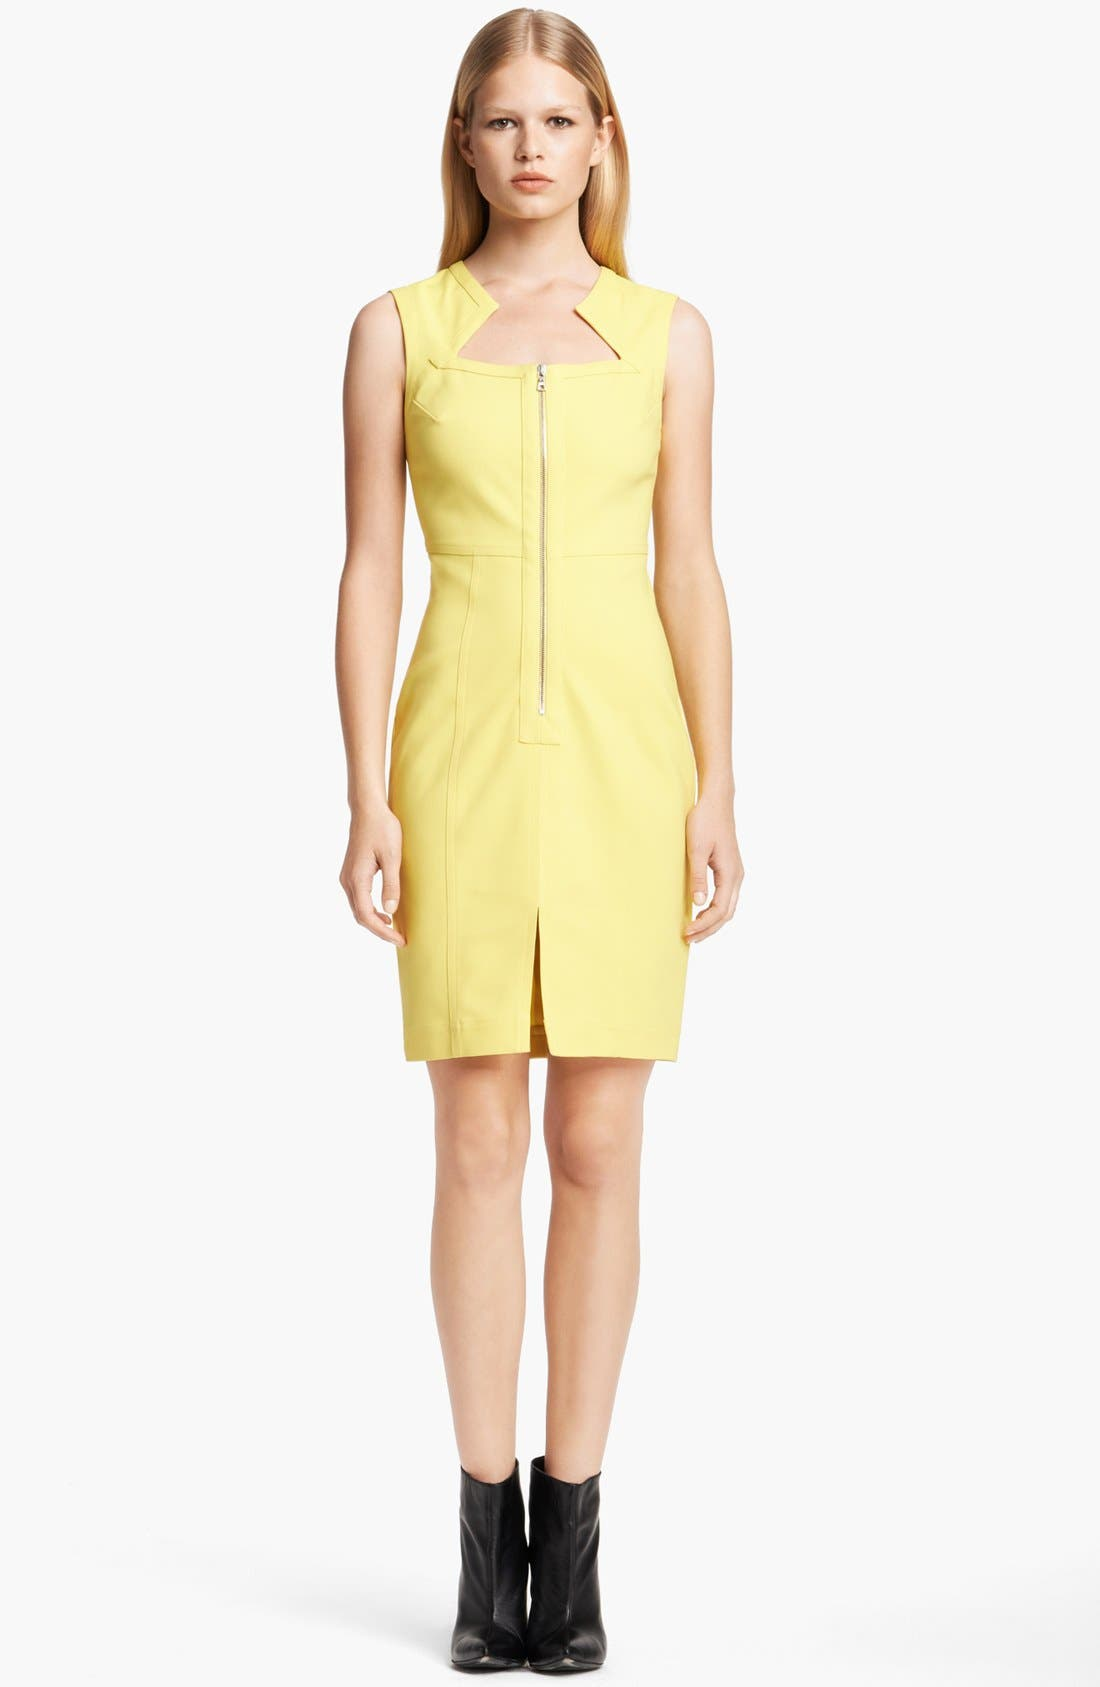 Main Image - Yigal Azrouël Sleeveless Techno Cotton Dress